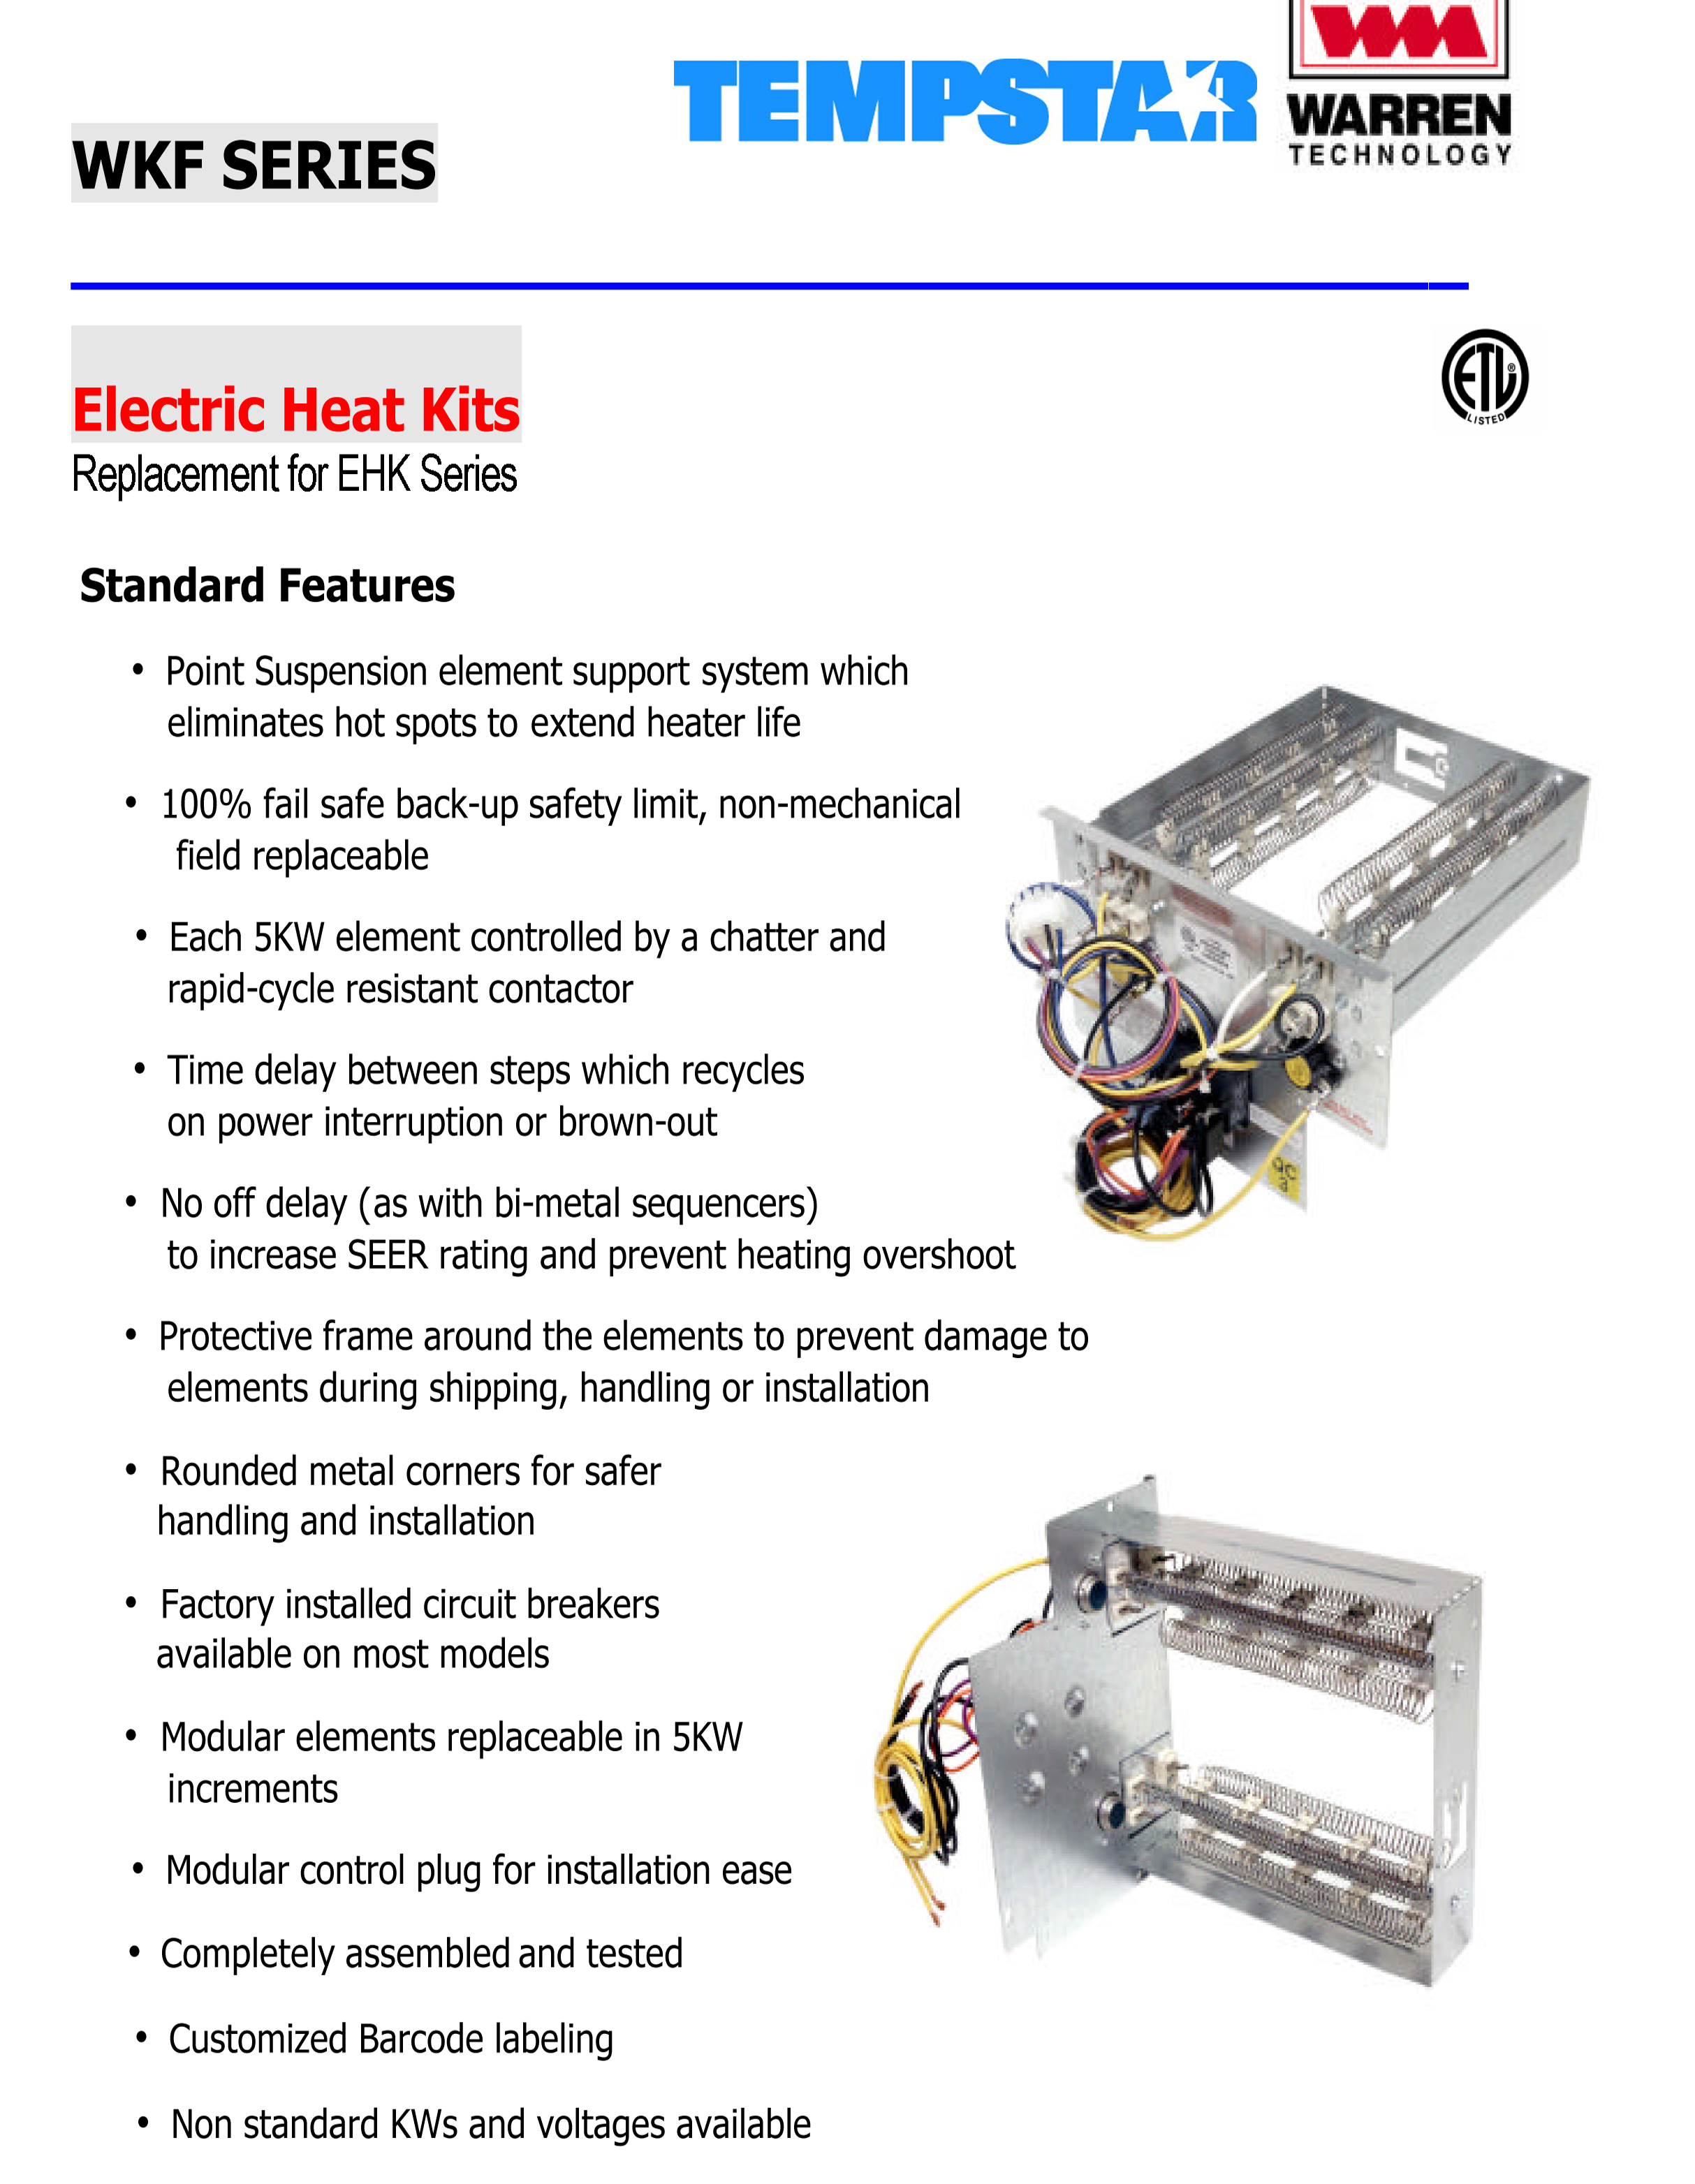 tempstar wkf brochure air handling unit with electric heater grihon com ac, coolers heat strip wiring diagram at bakdesigns.co